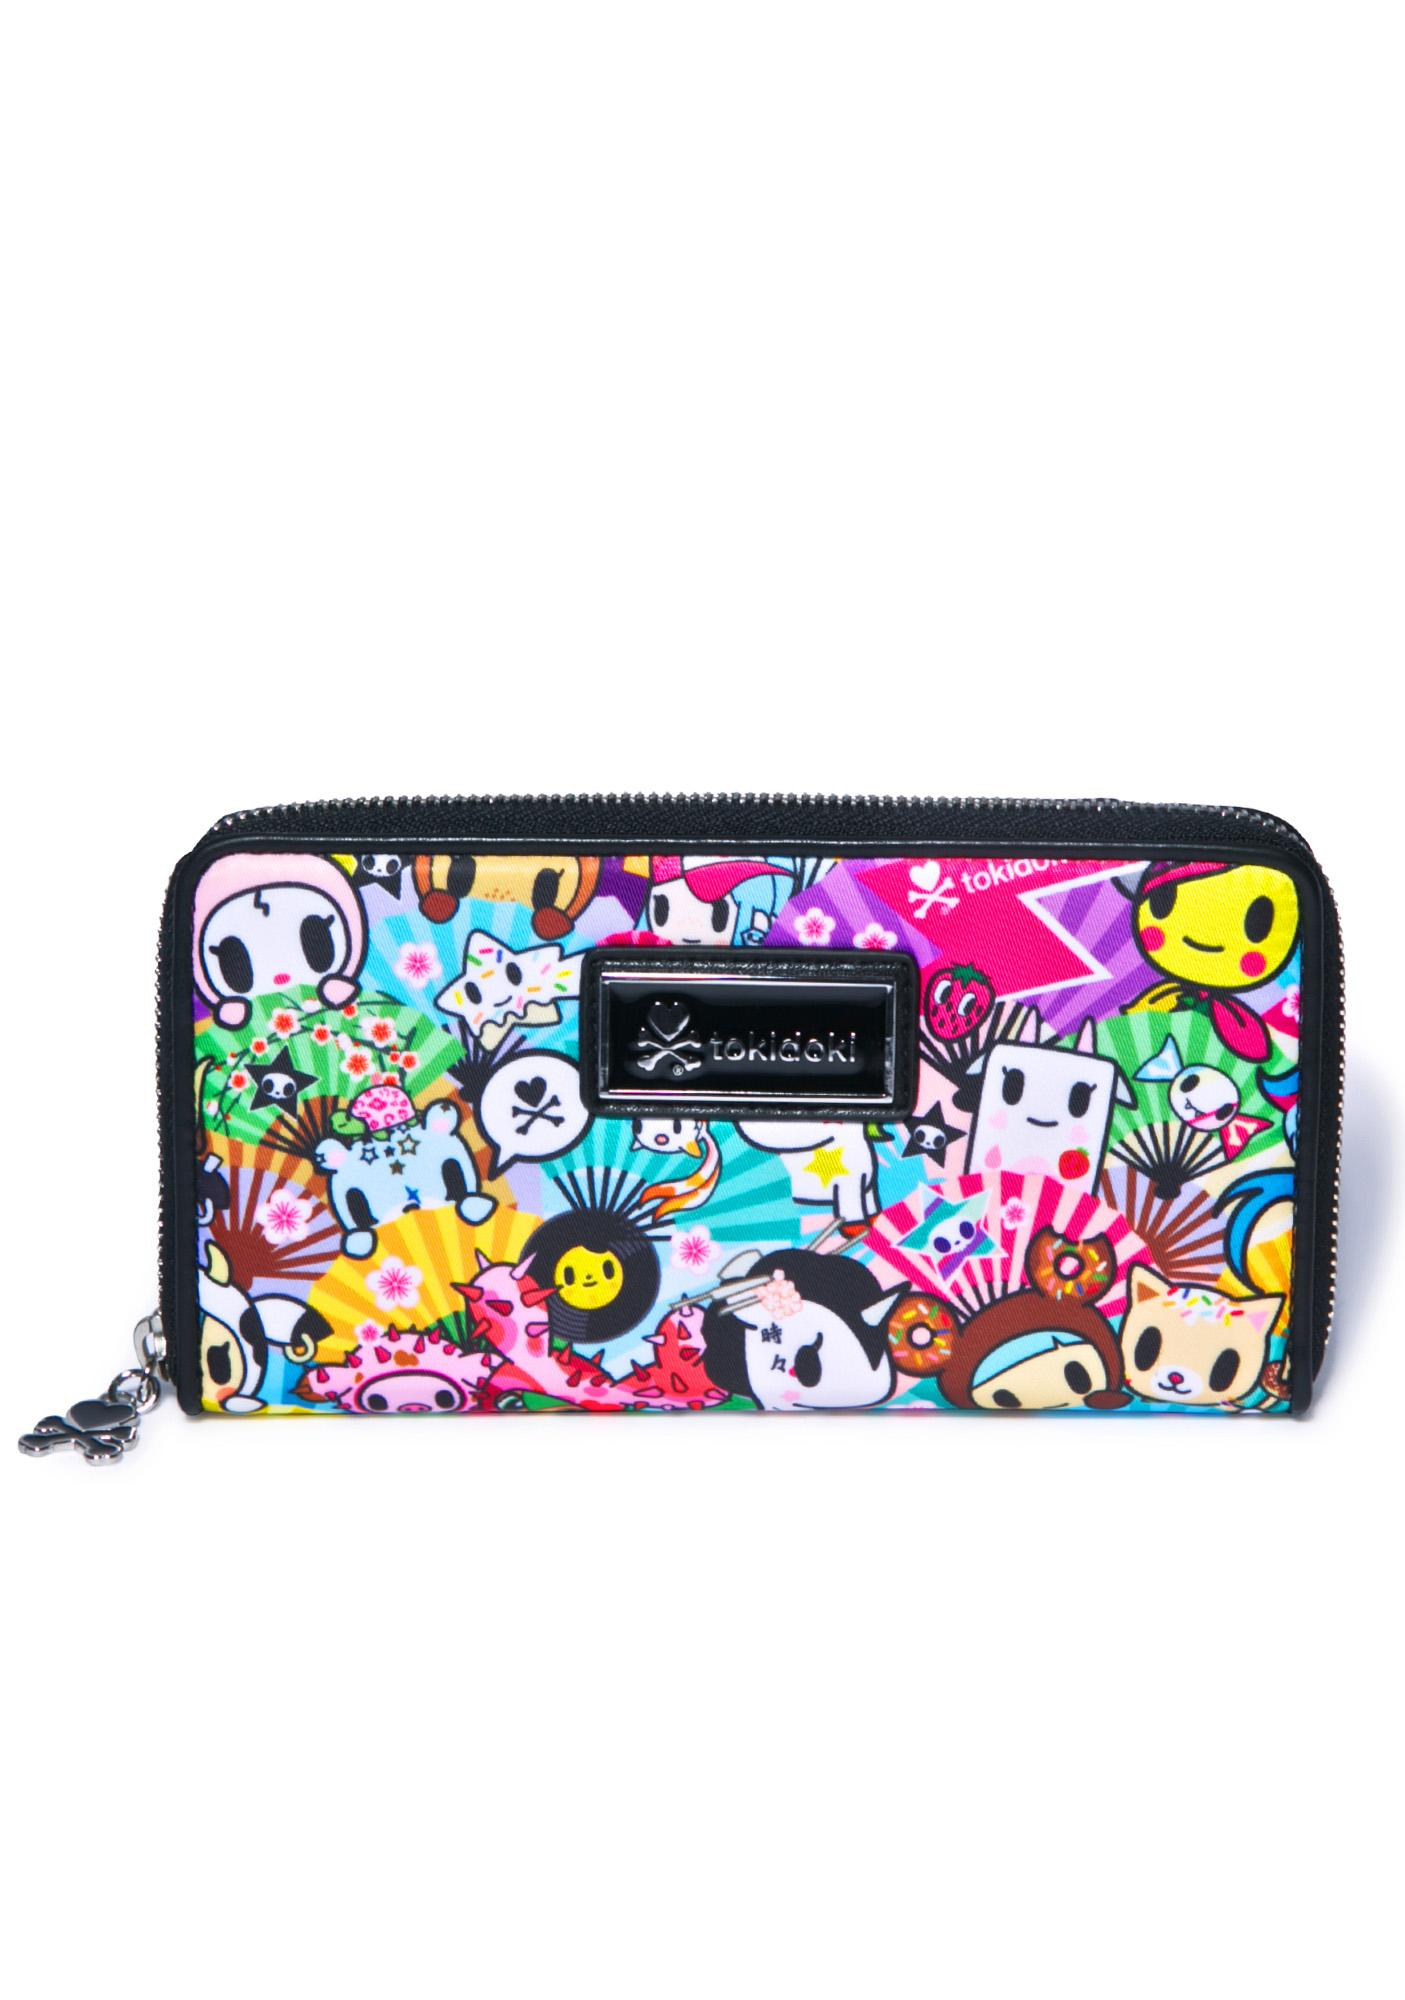 Tokidoki Superfan Collection Wallet